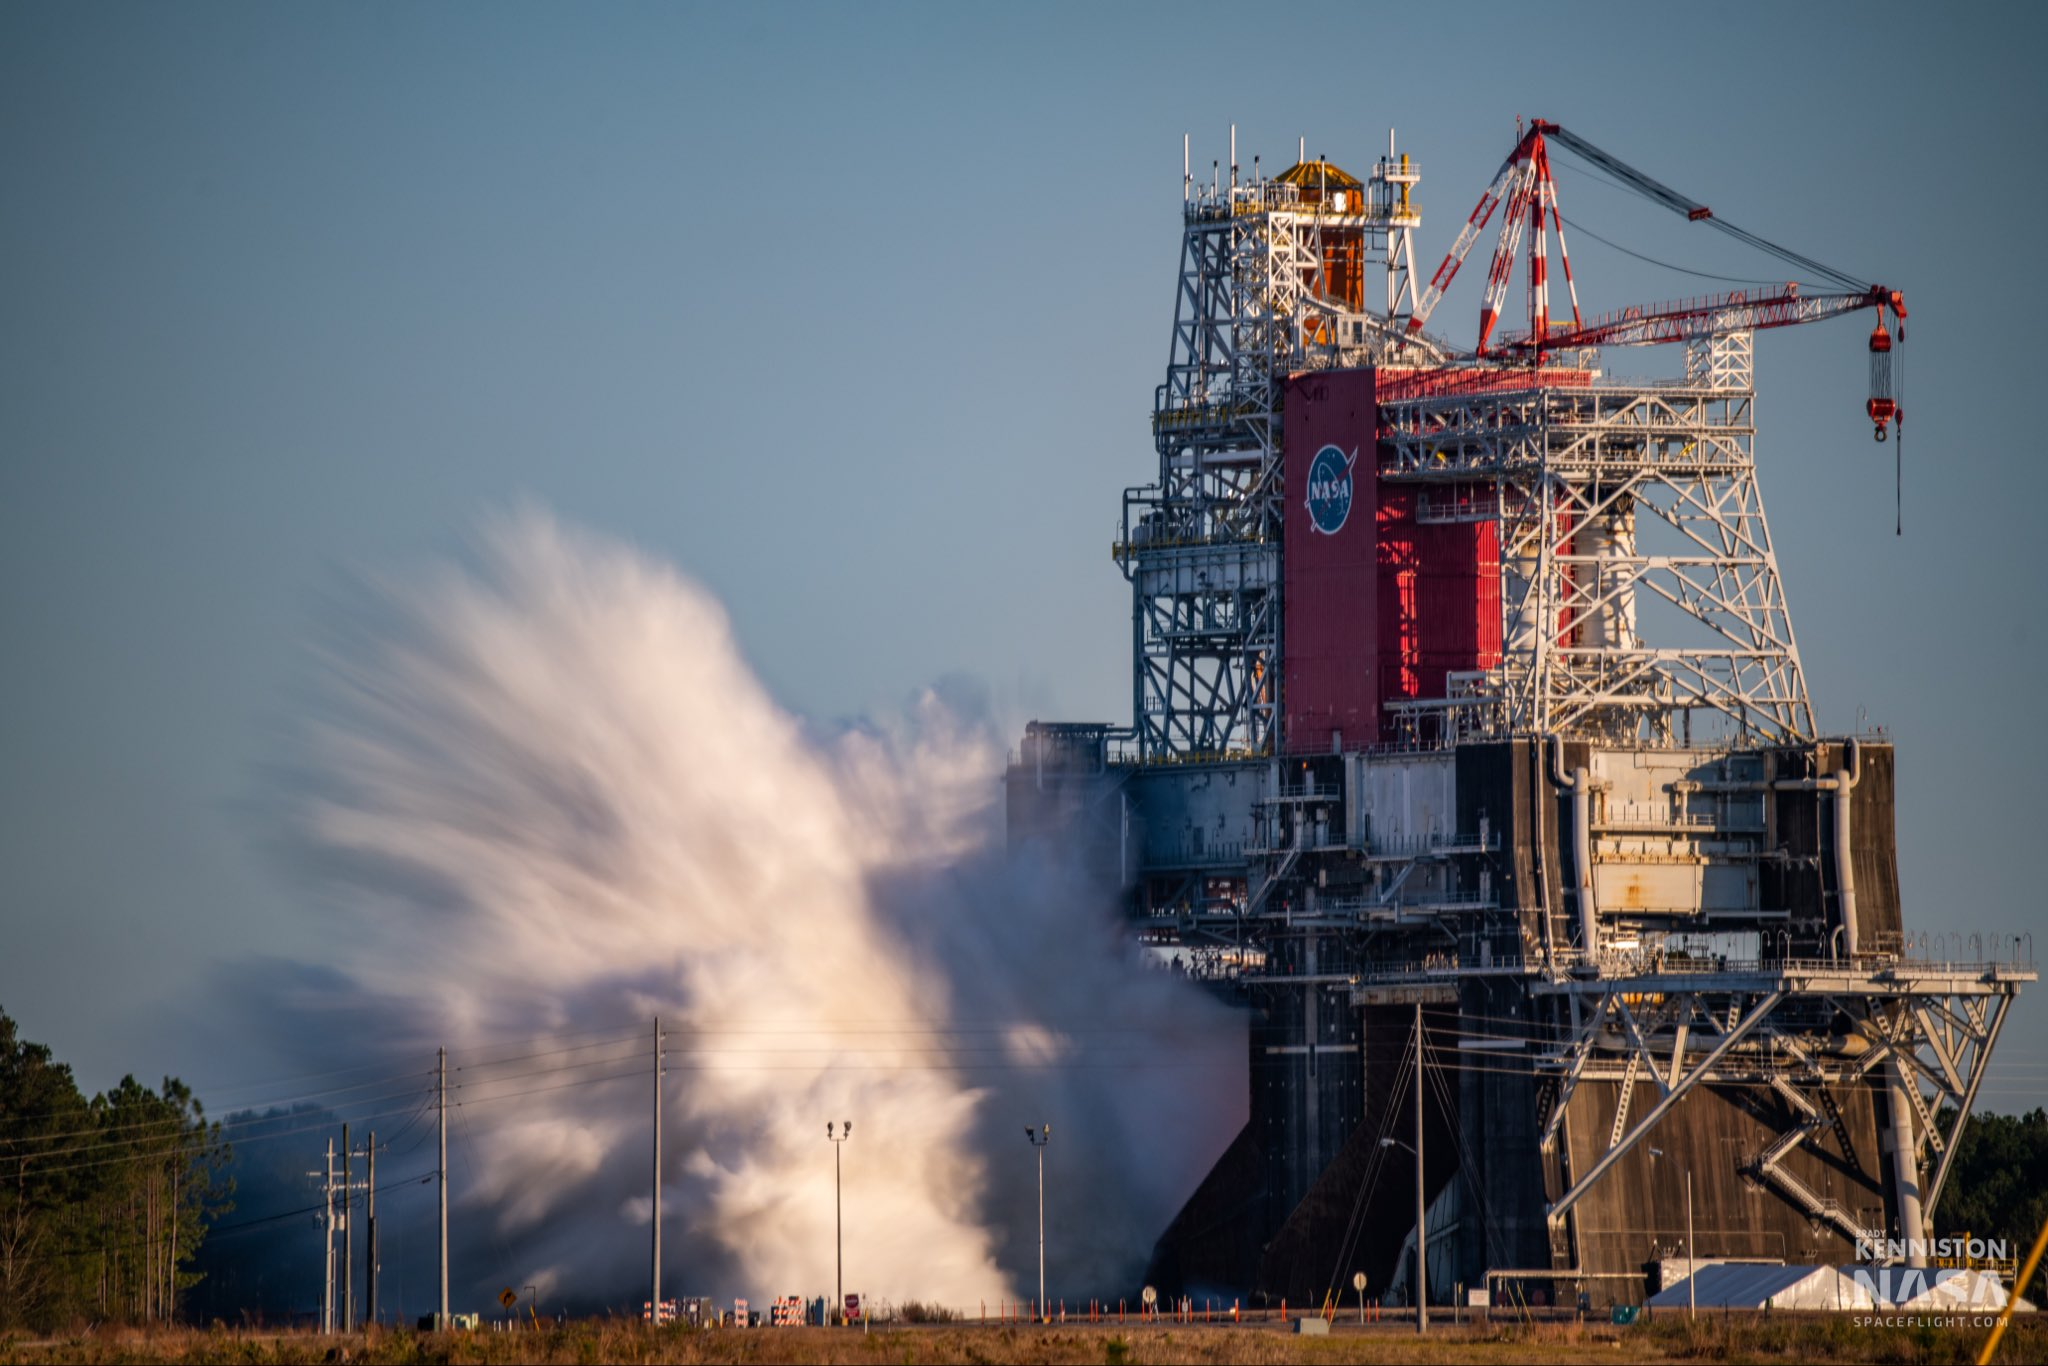 NASA SLS Core Stage aborts high-stakes Green Run static fire